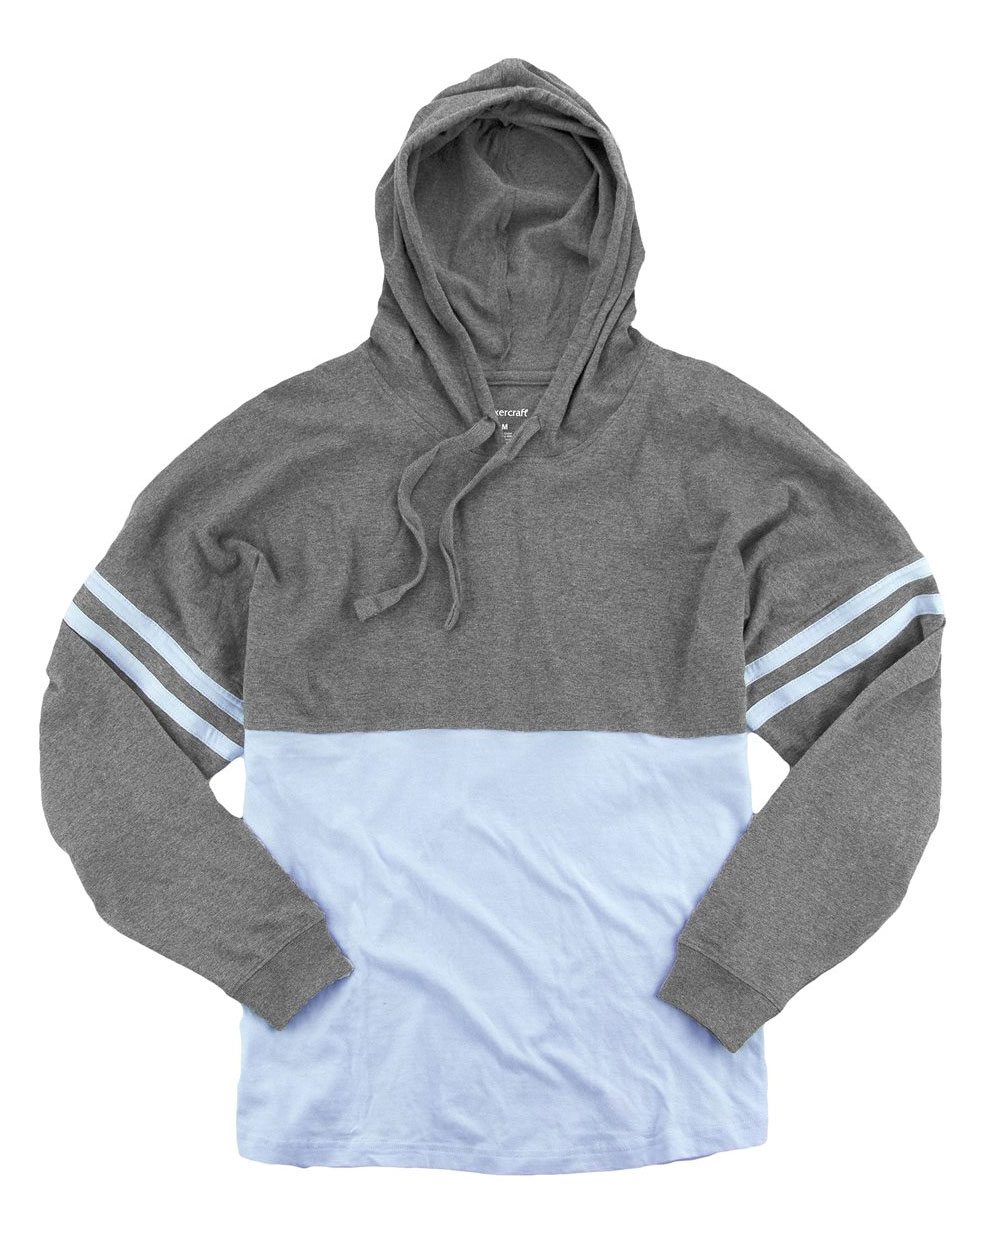 Adult Hooded Pom Pom Jersey